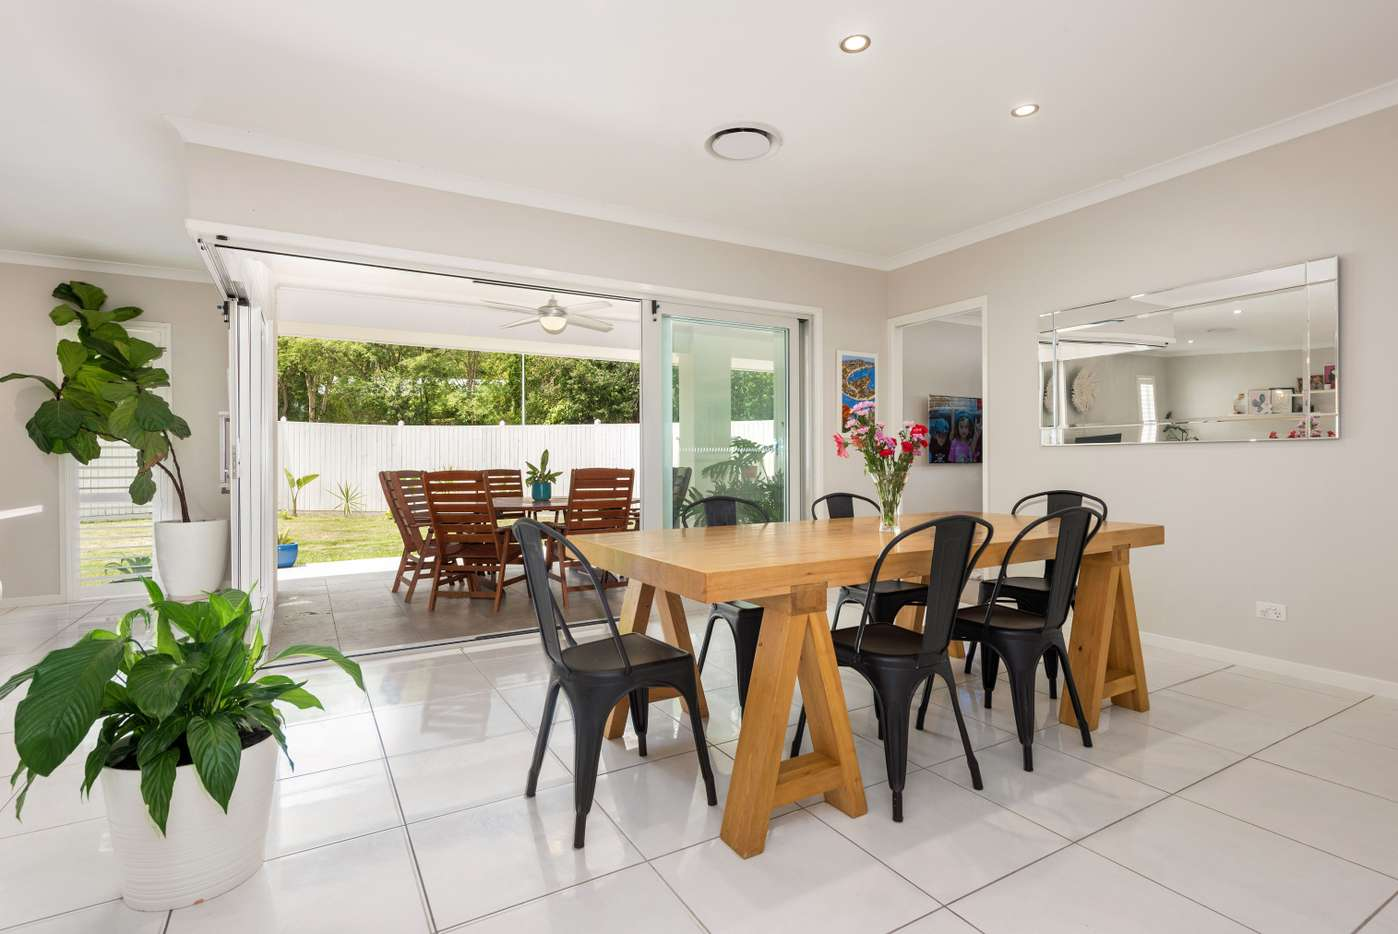 Main view of Homely house listing, 2 Poppy Place, The Gap, QLD 4061